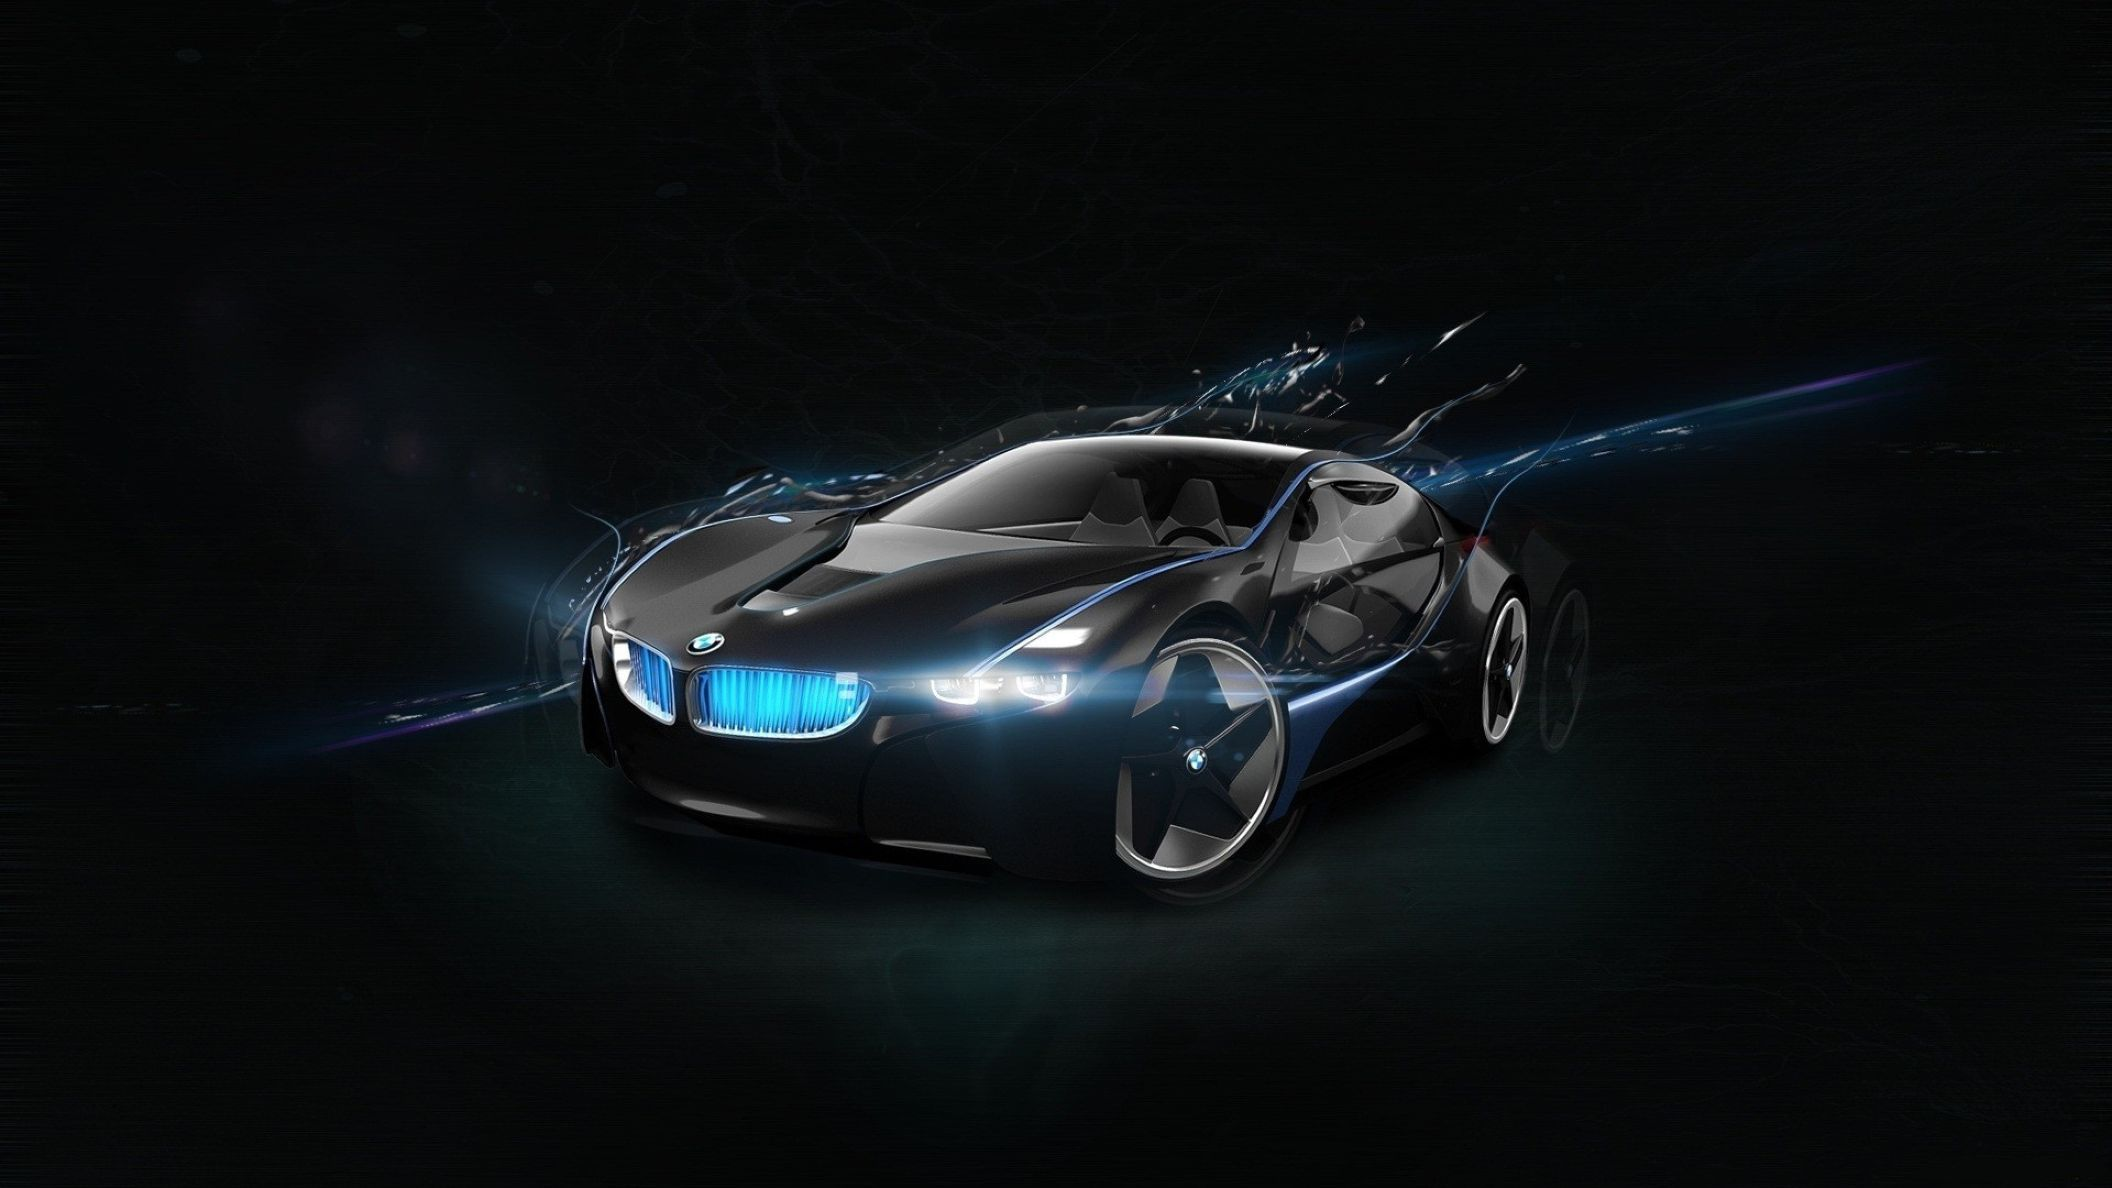 Download free HD BMW Vision Super Car HD Wallpaper, image